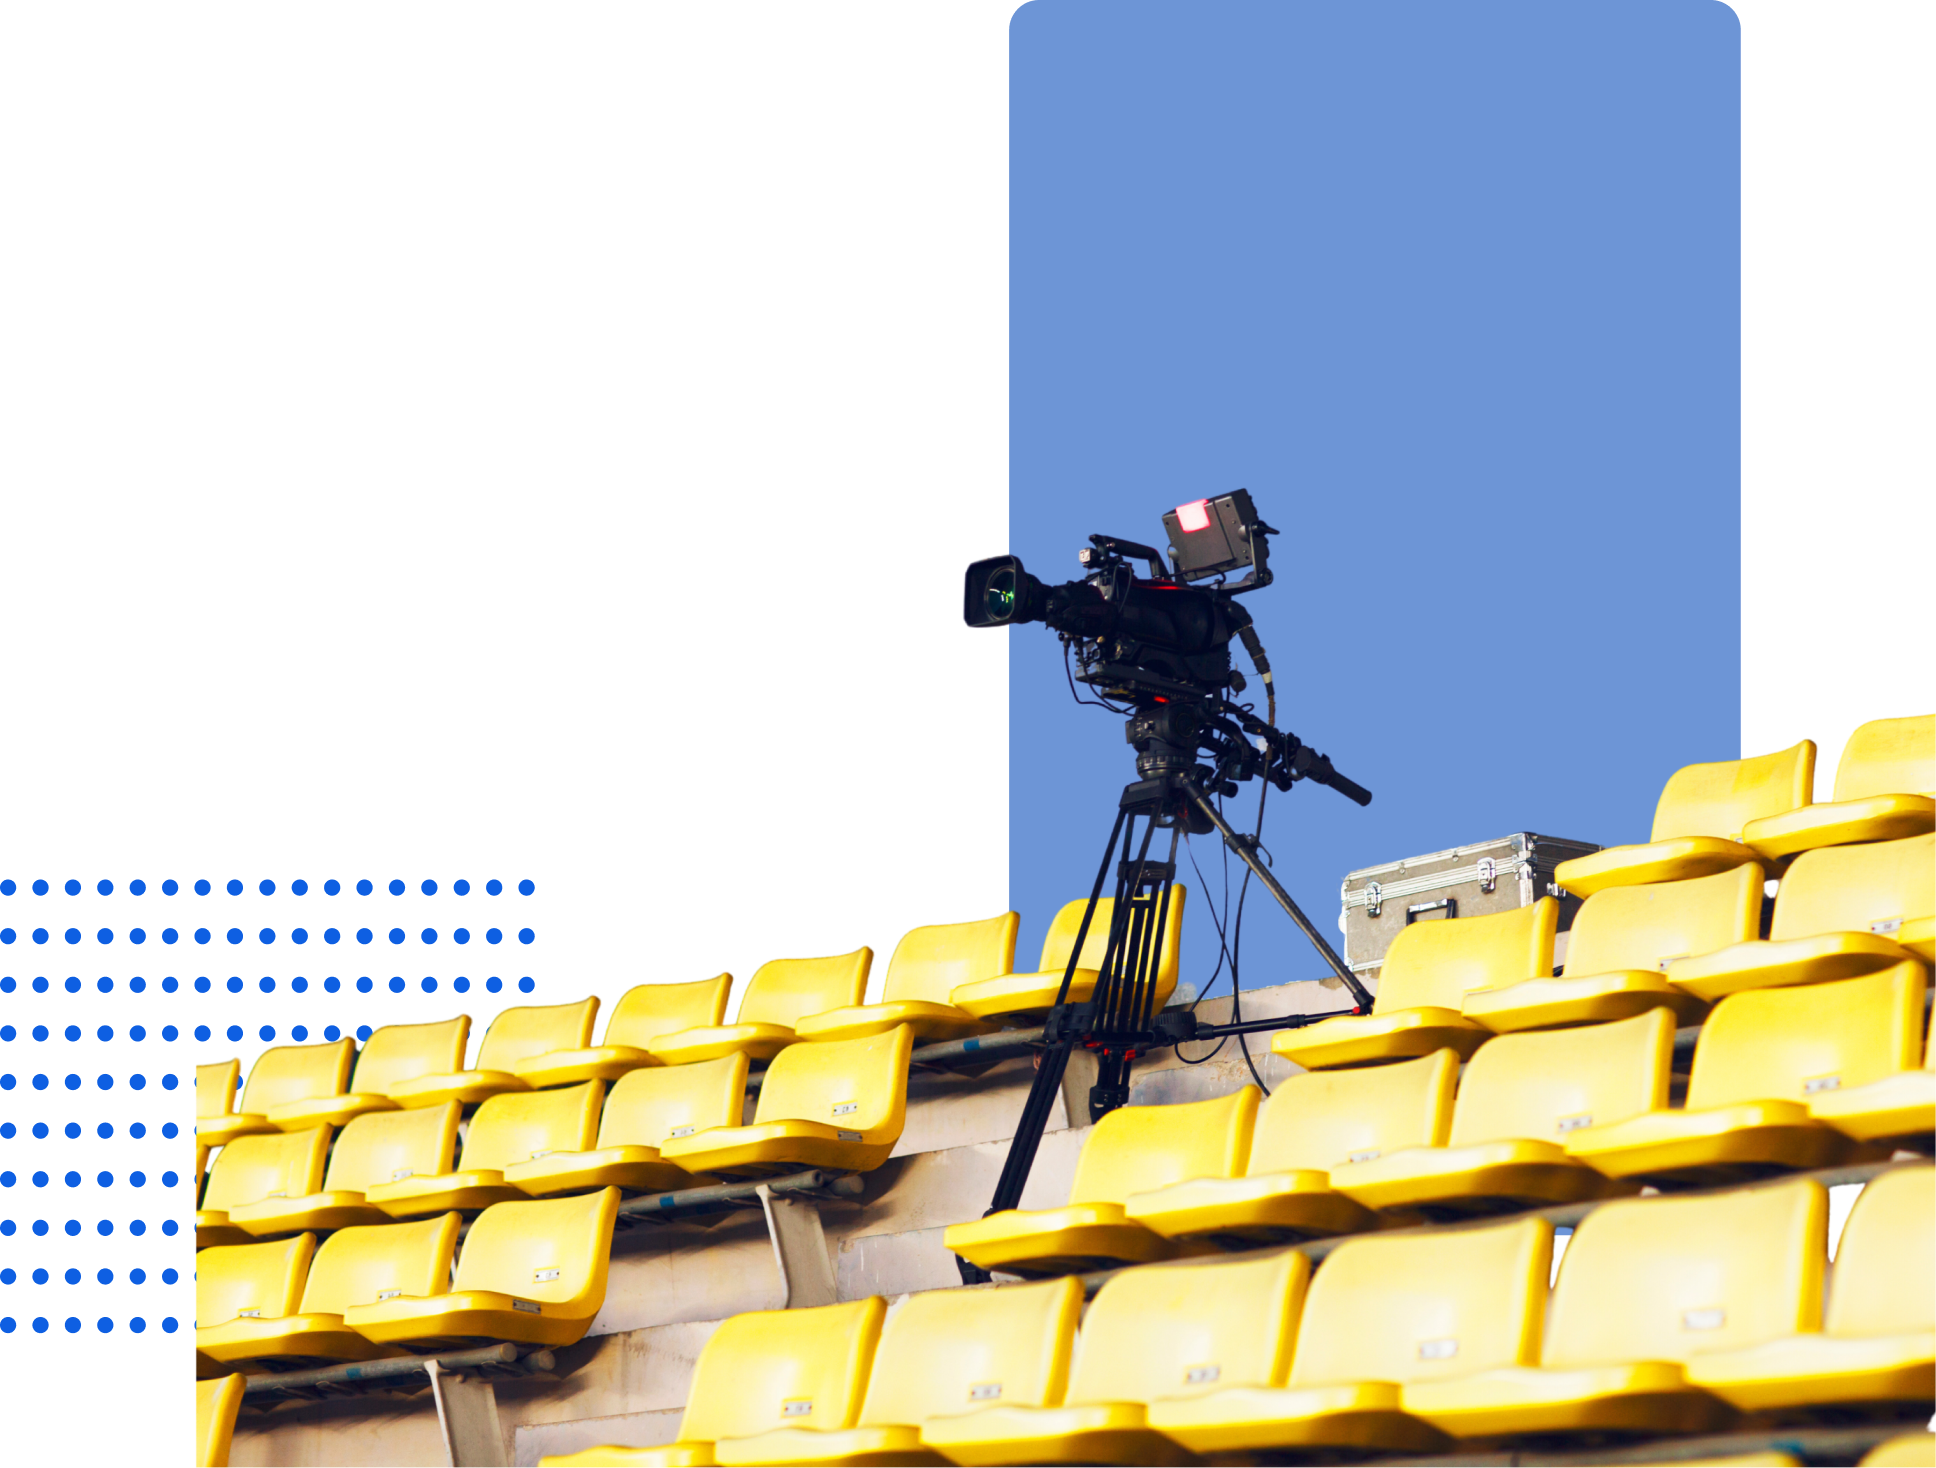 Image of professional video camera